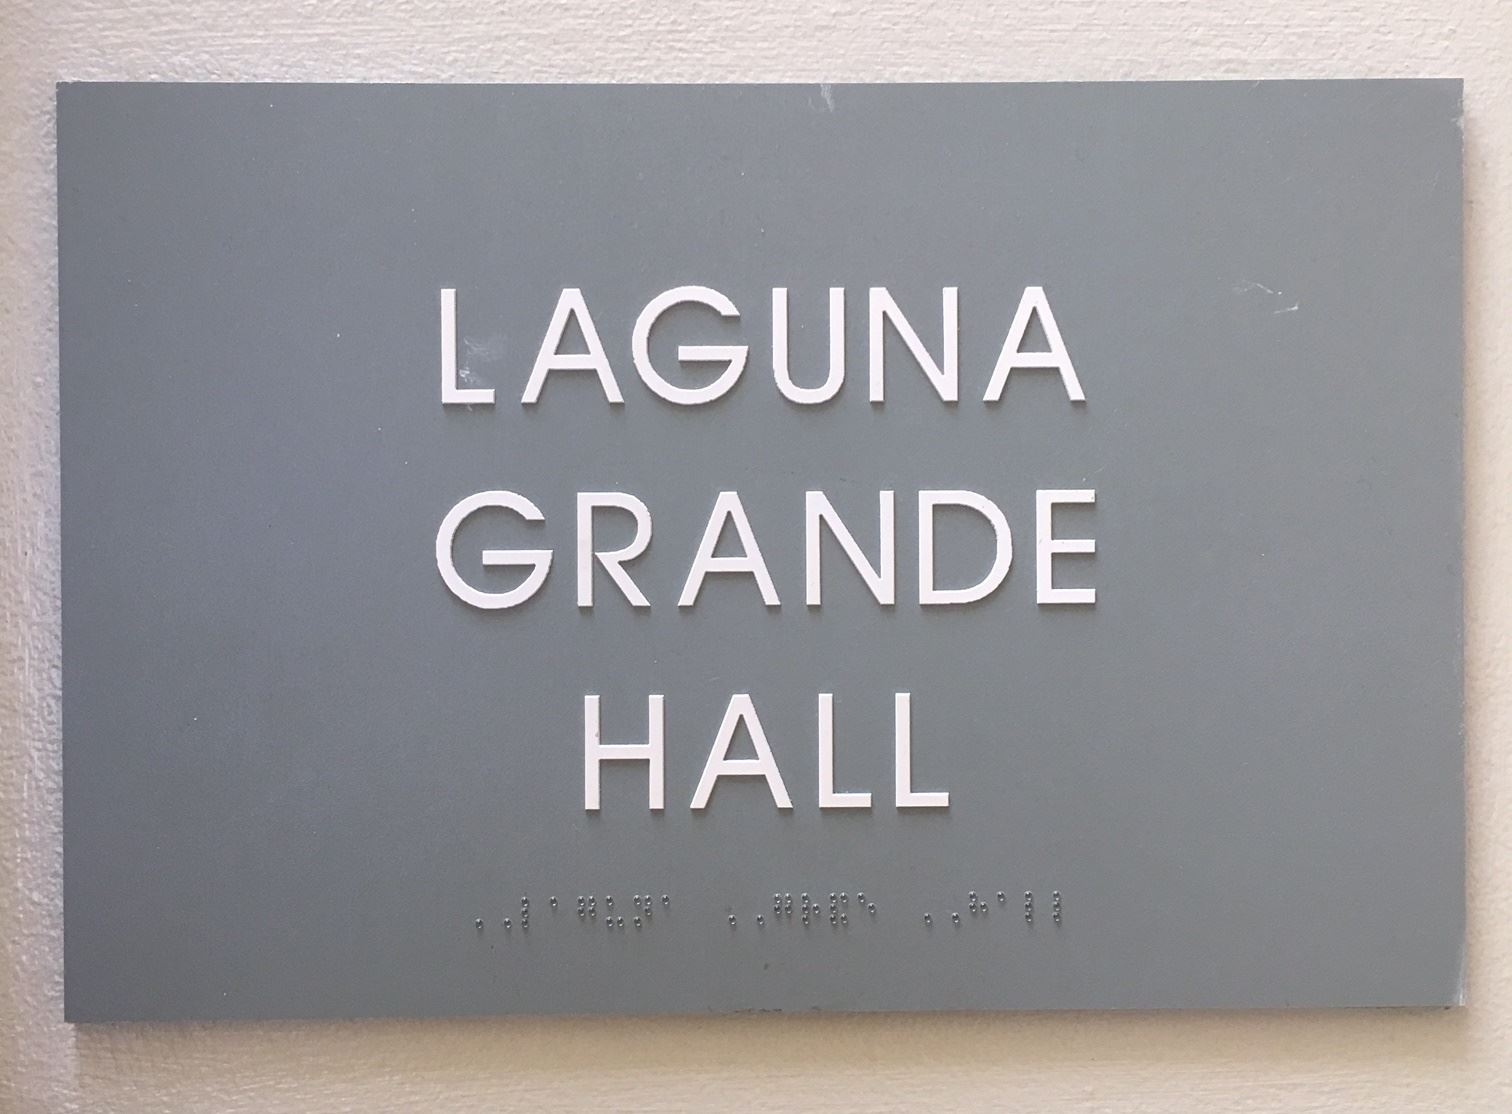 Laguna Grande Hall Sign